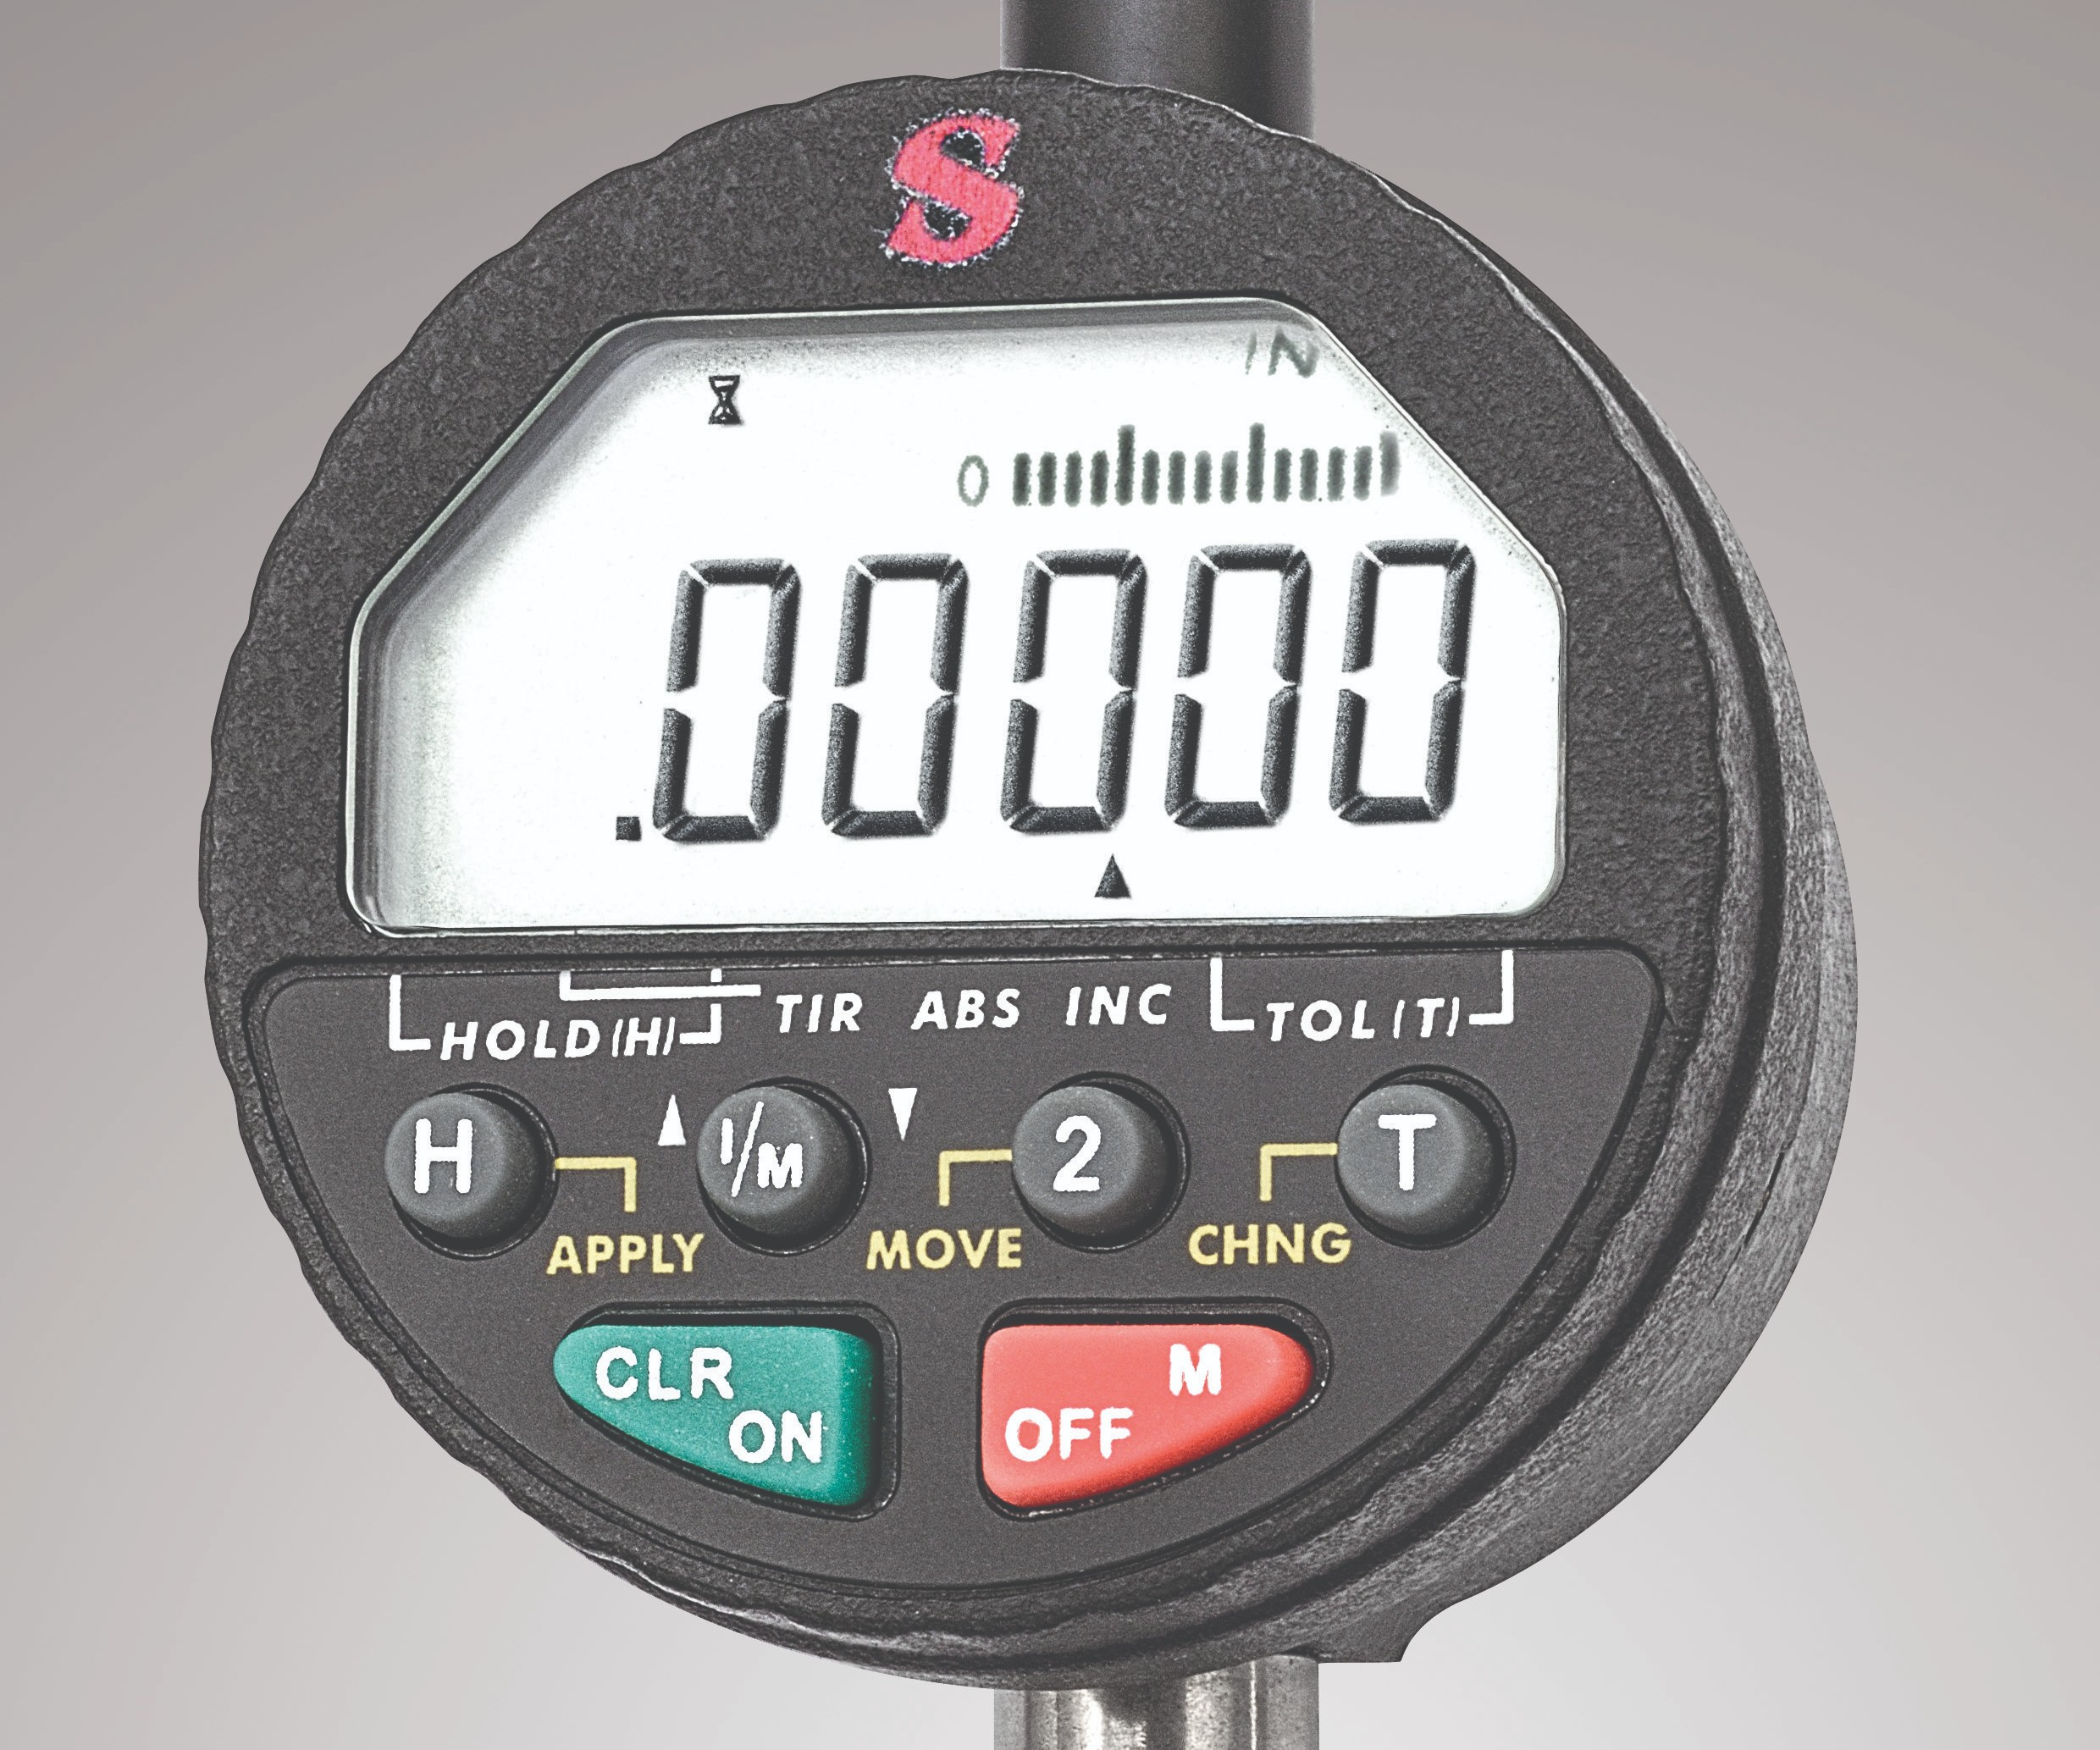 L.S. Starrett digital indicator